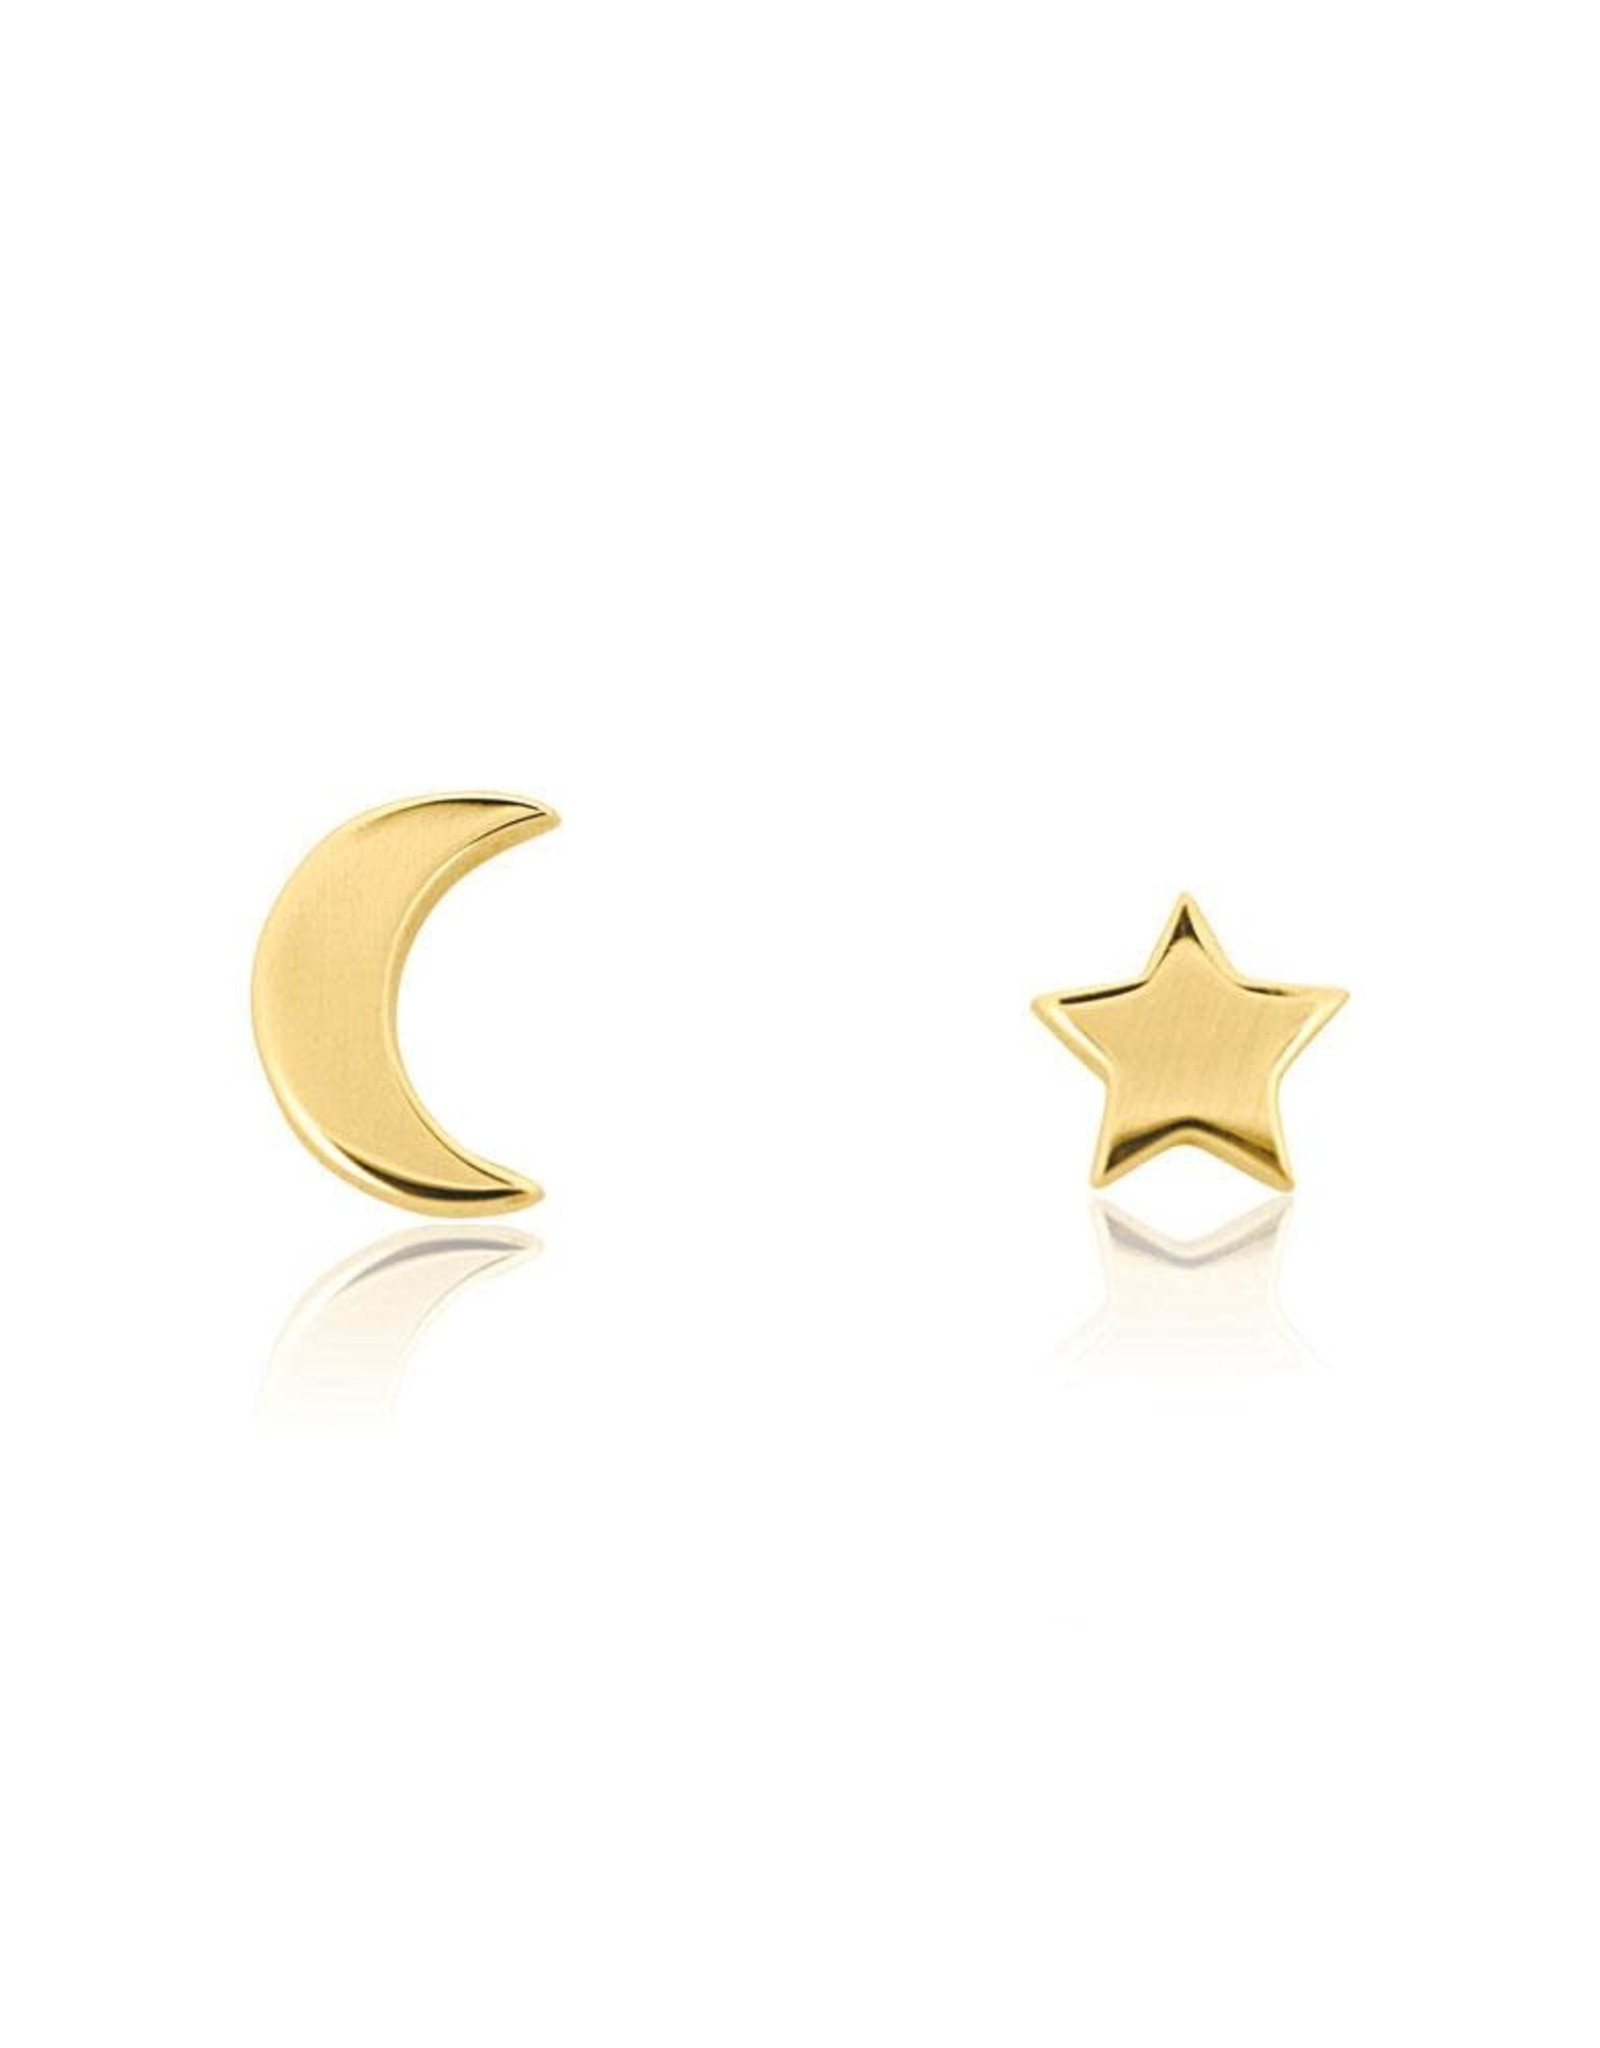 Linda Tahija Star & Moon Stud Earrings. Gold